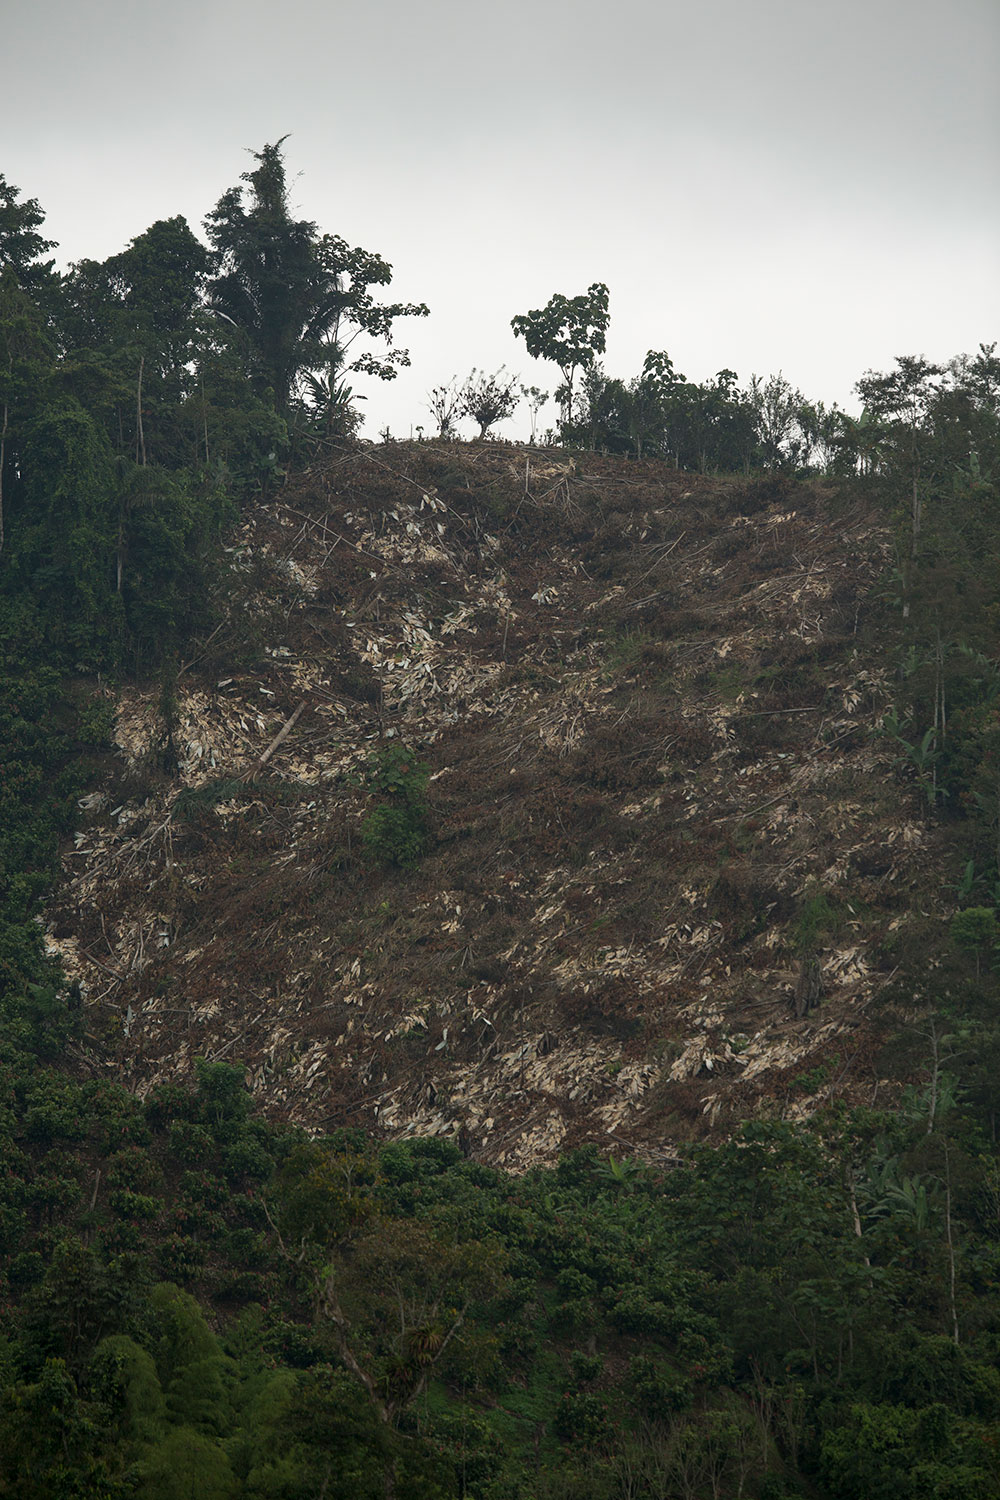 A steep hillside that has been deforested